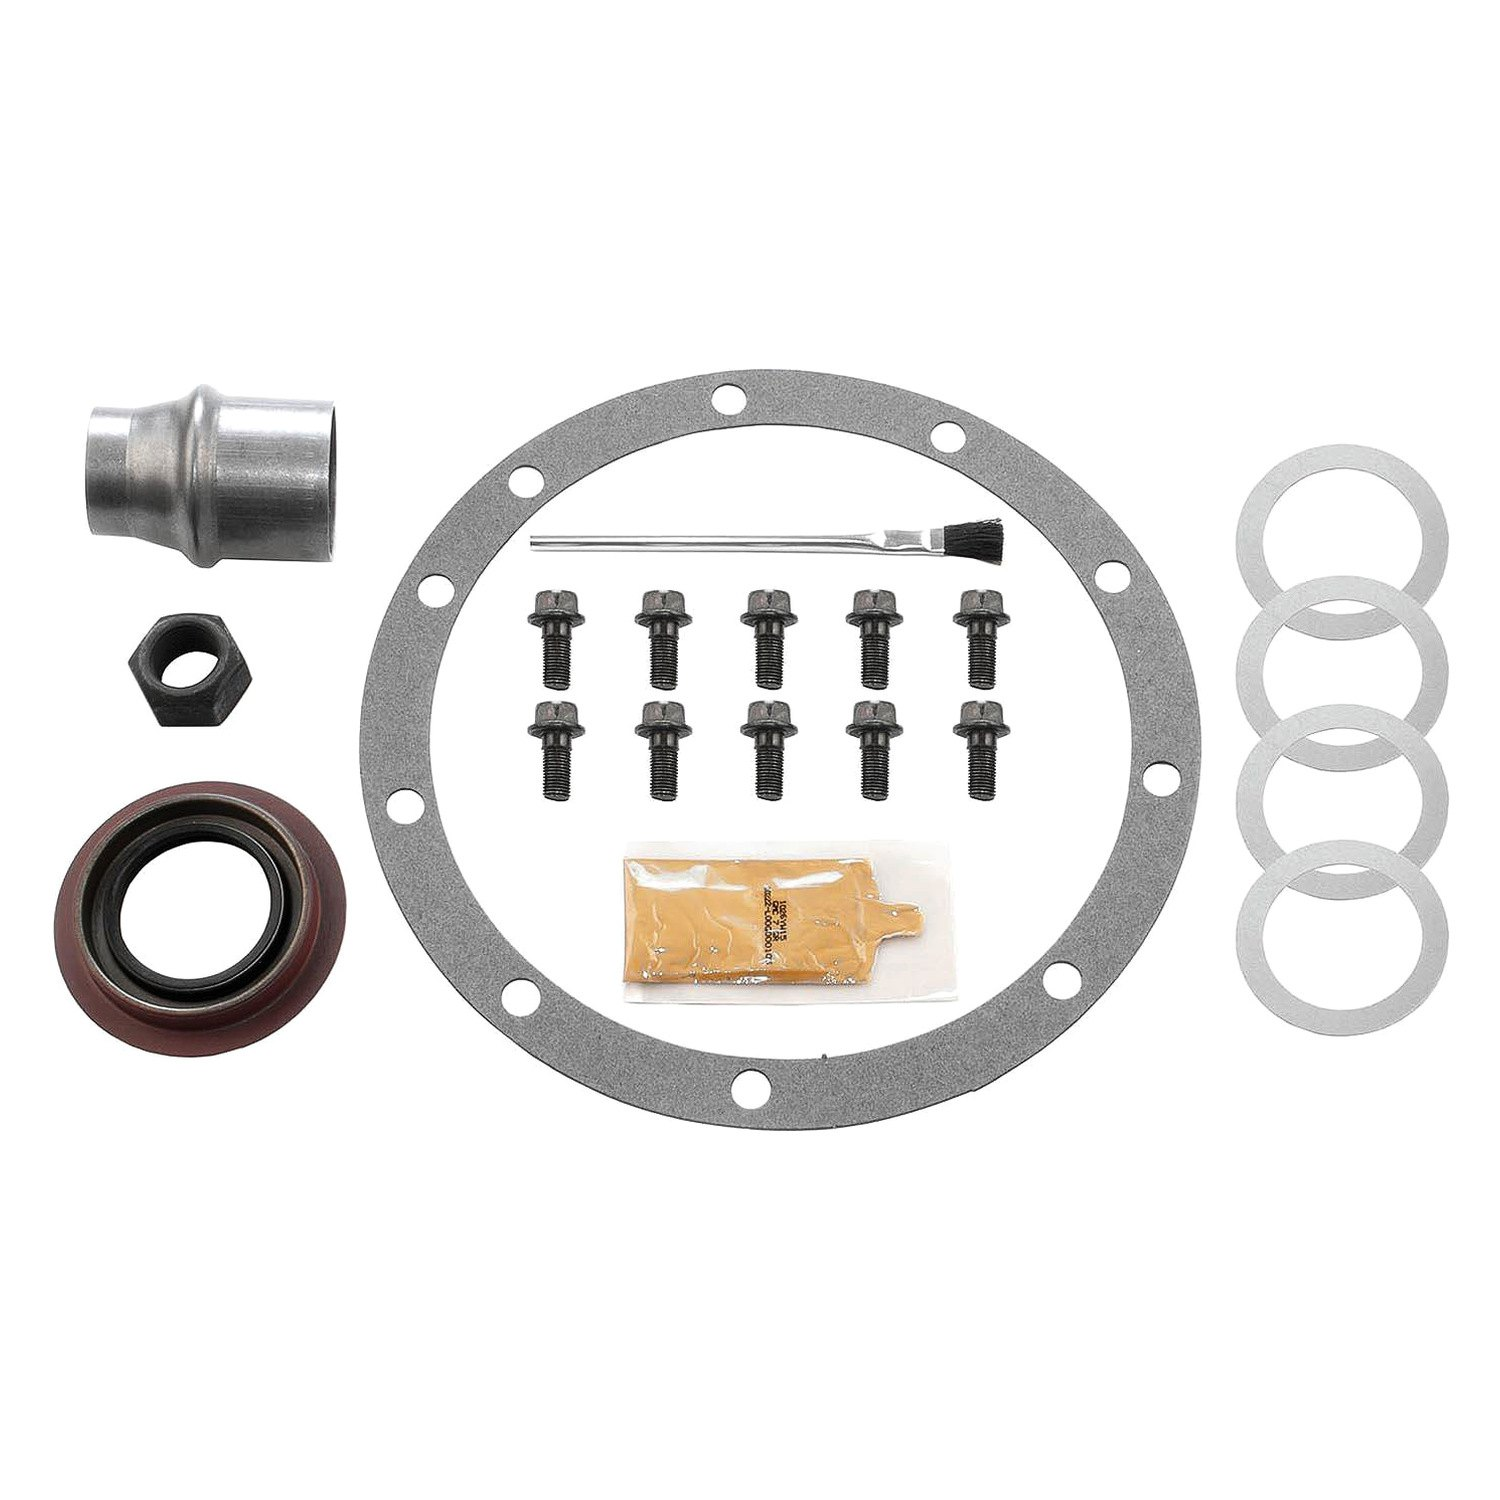 Motive Gear Dodge Charger 1969 Differential Installation Kit